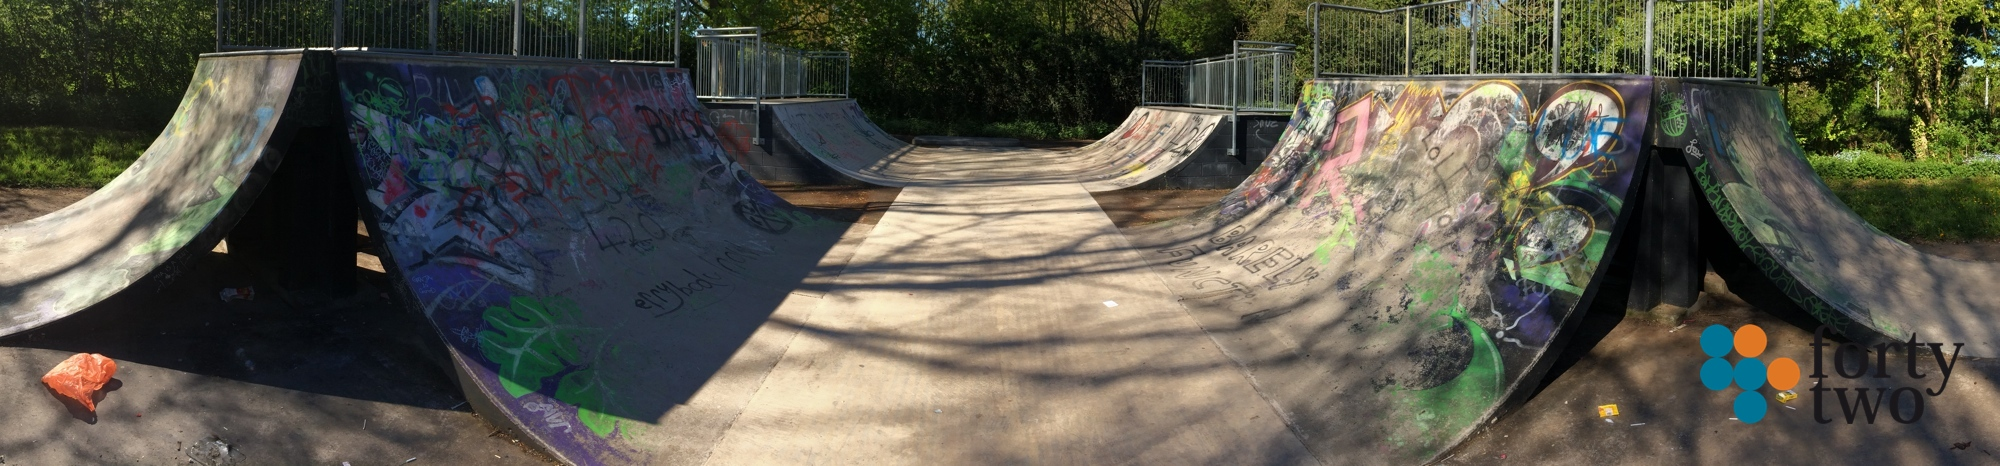 Keyworth skateparks concrete mini ramp.